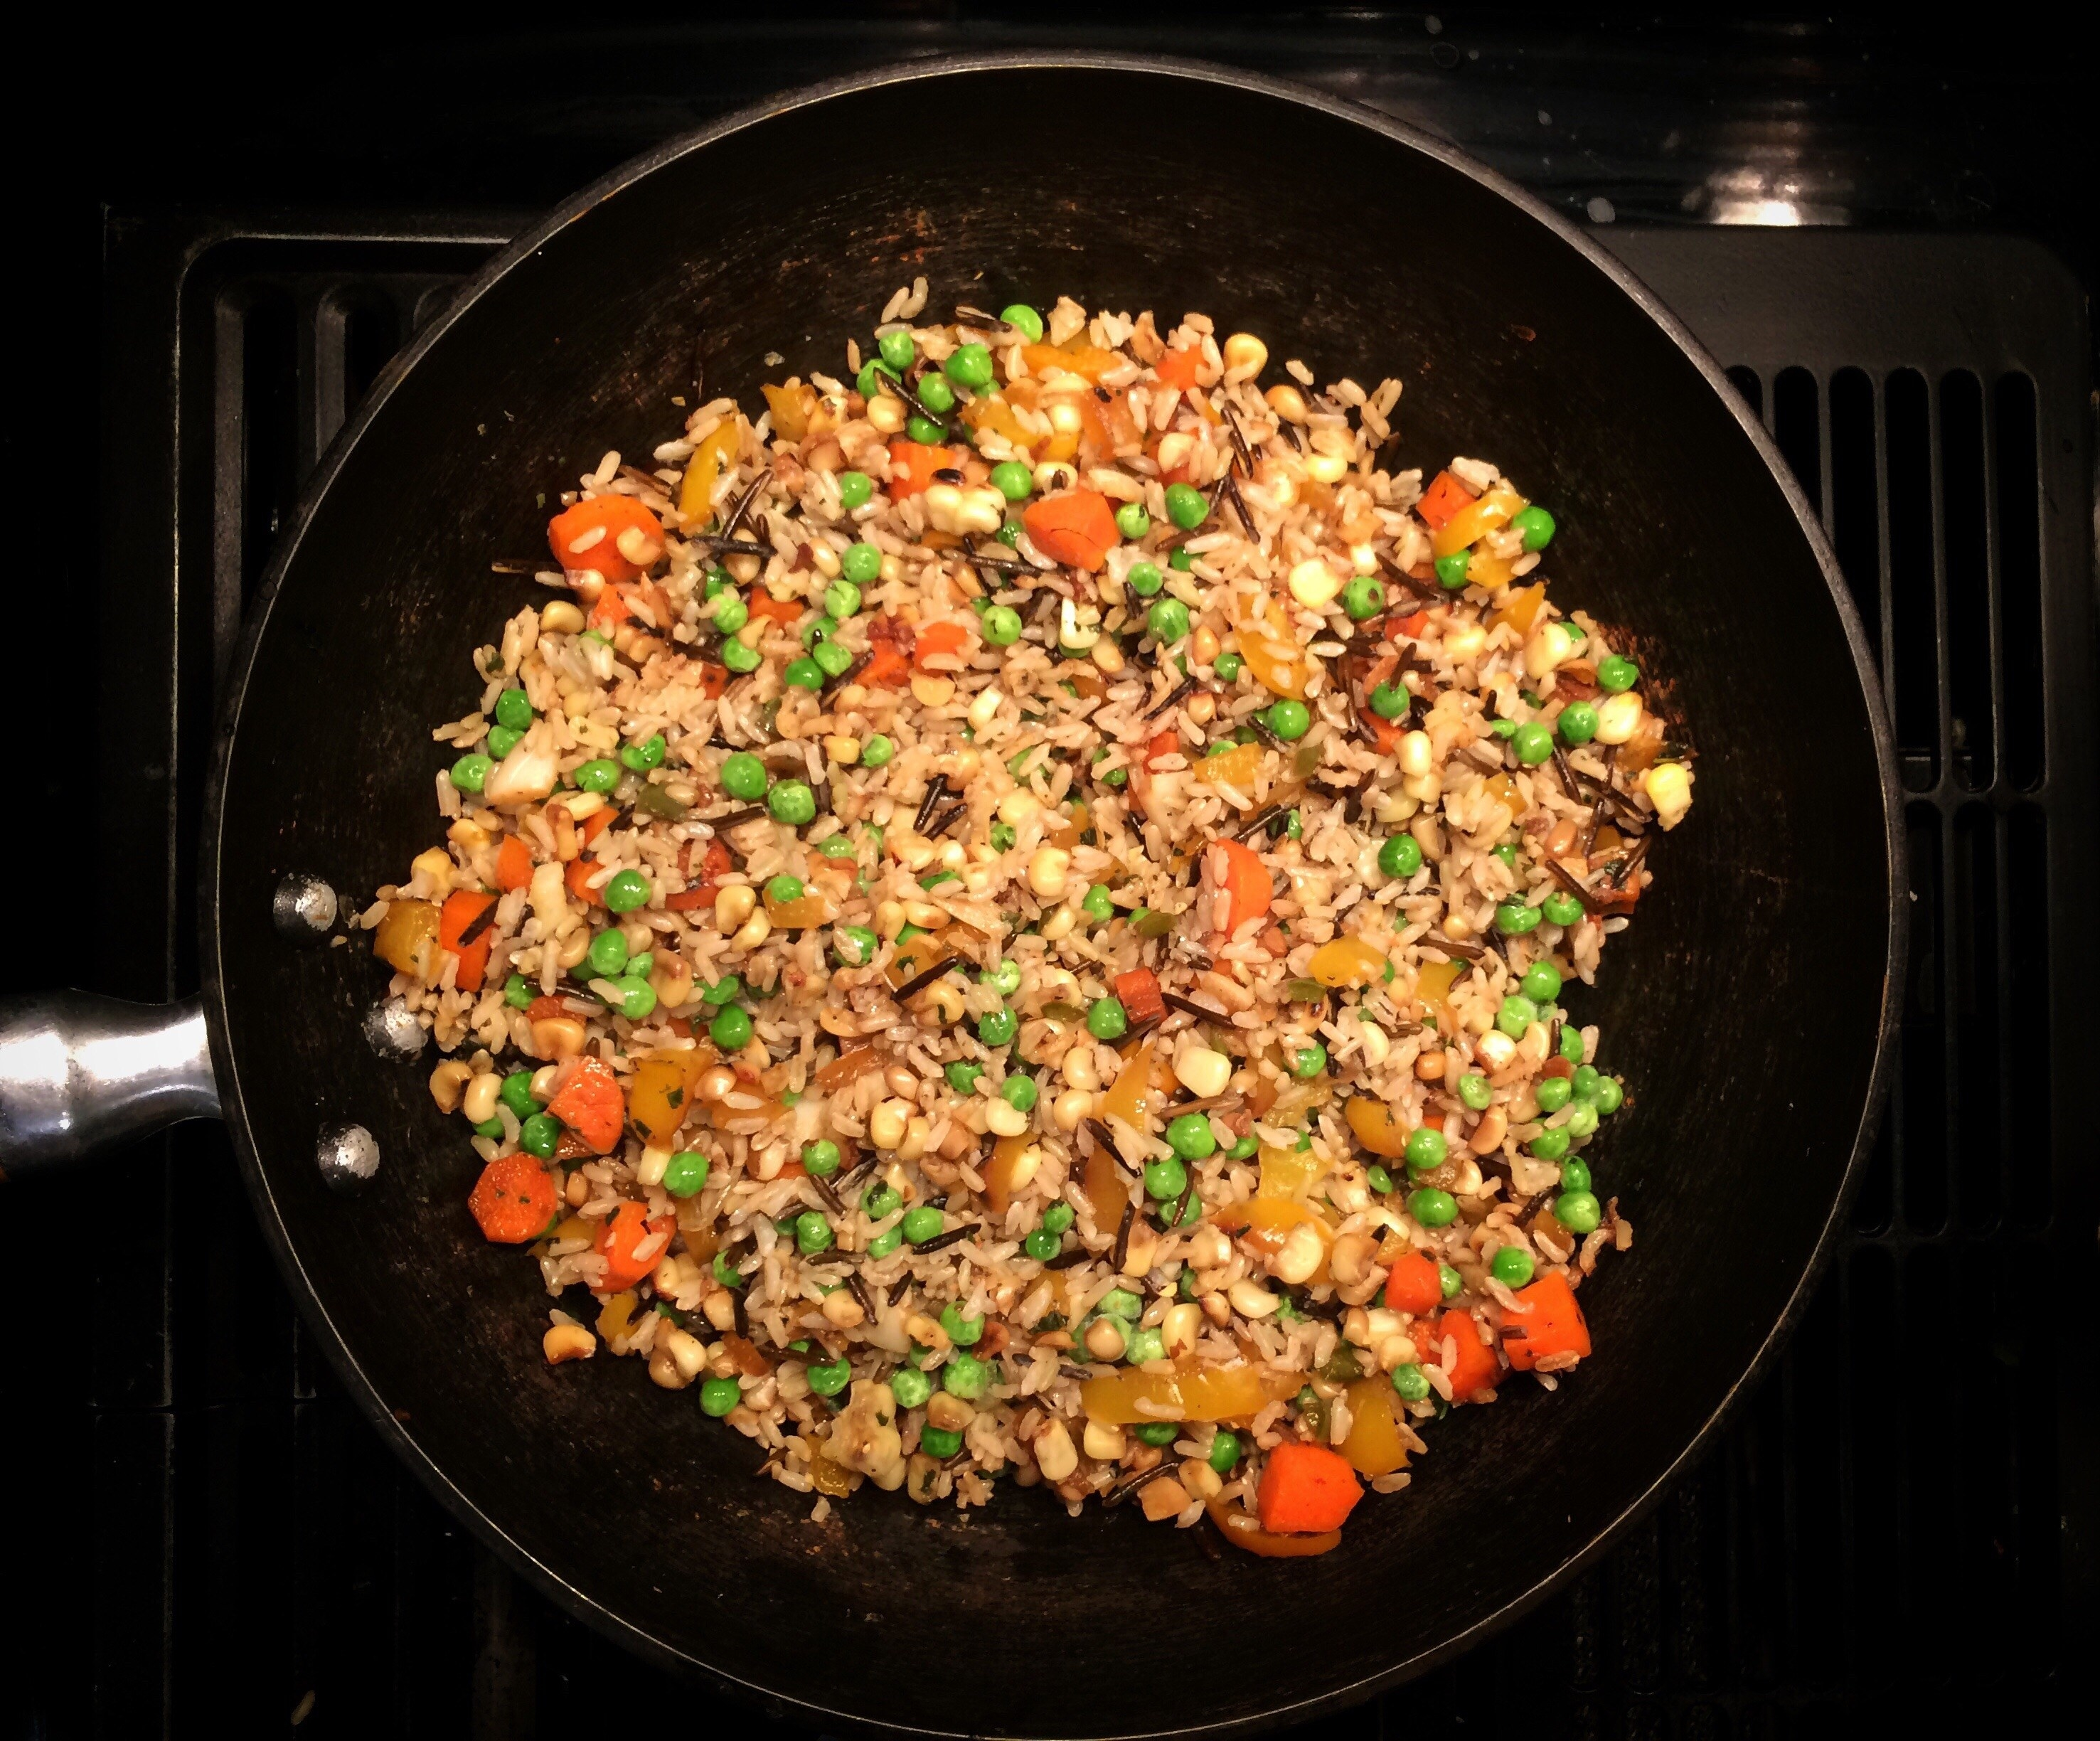 A skillet of fried rice with peas and carrots.